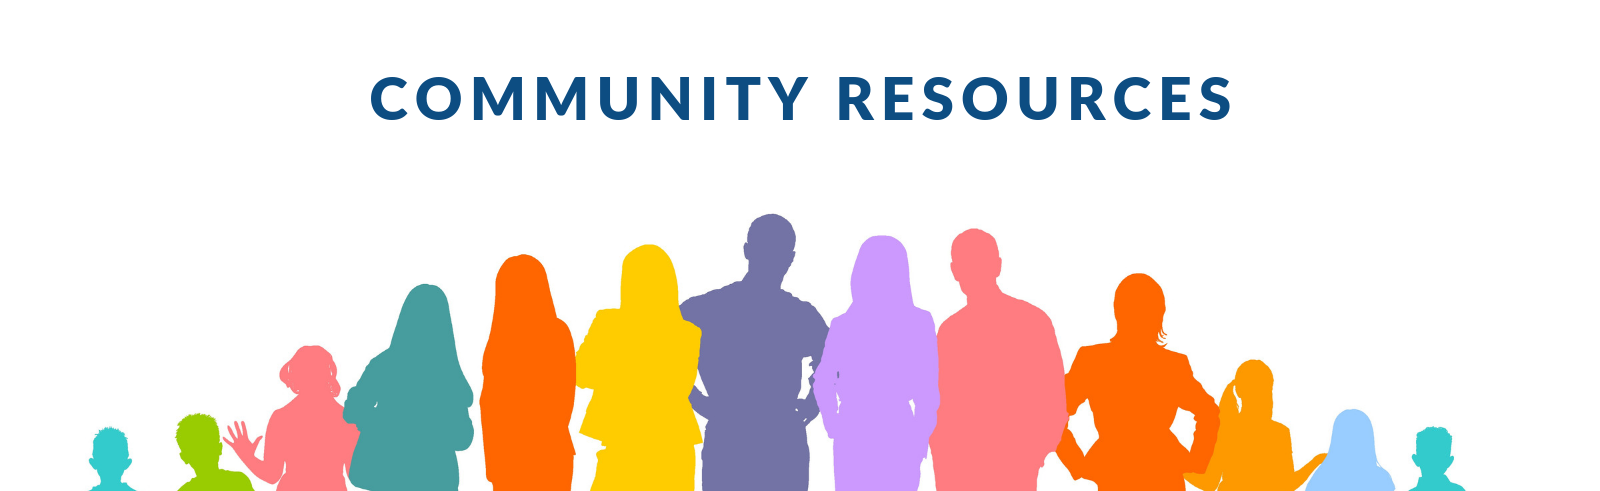 Community Partners Banner Image